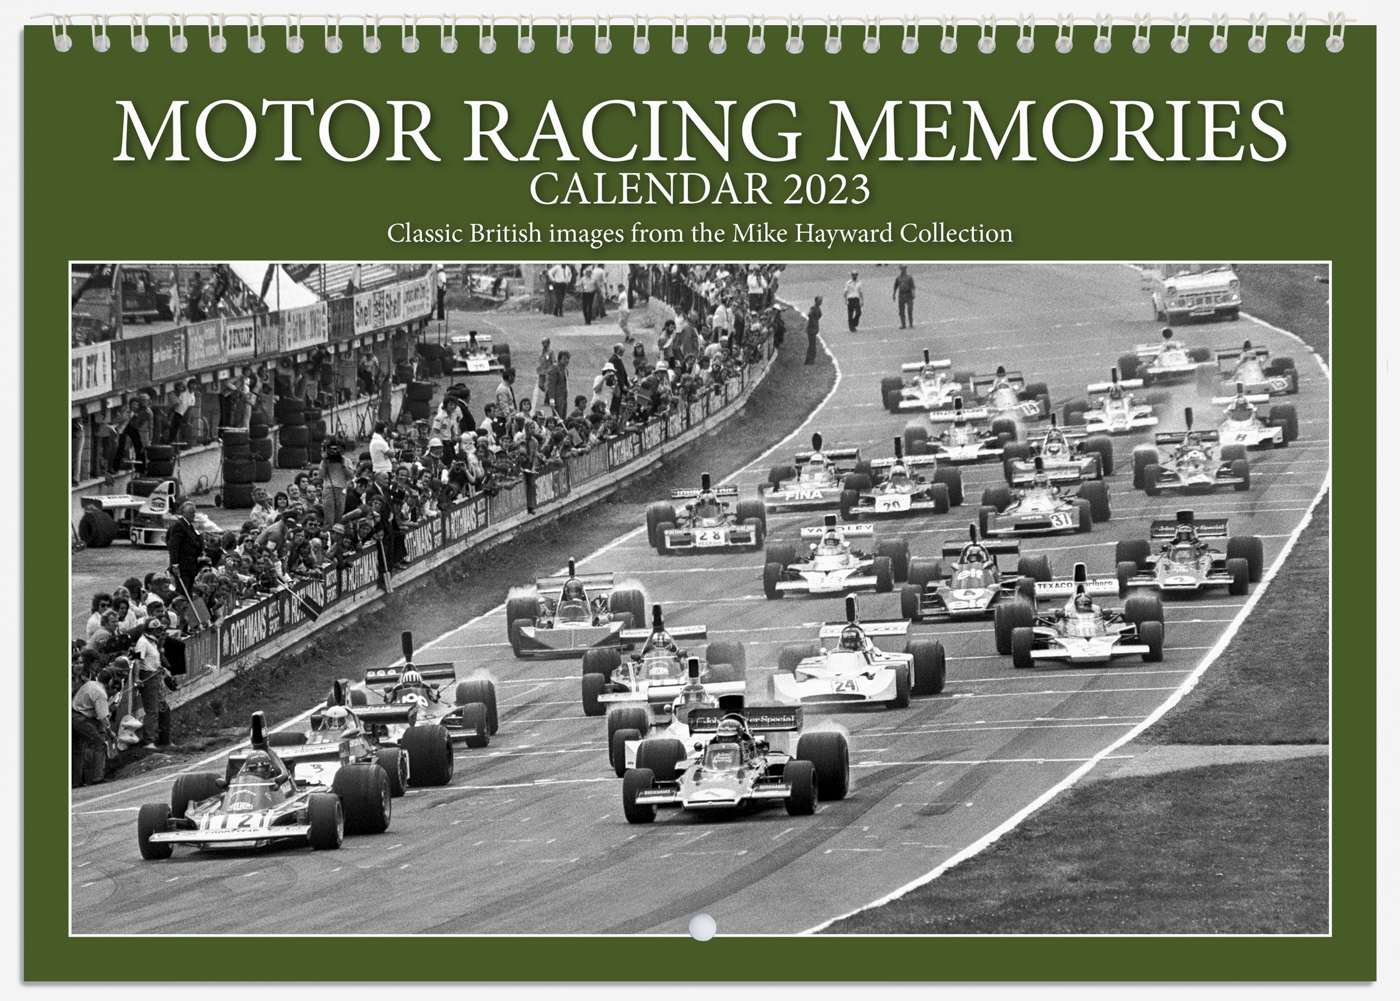 British motor sport highlights from 1965 to 1986 are featured in the Motor Racing Memories Calendar 2021 from the Mike Hayward Collection.